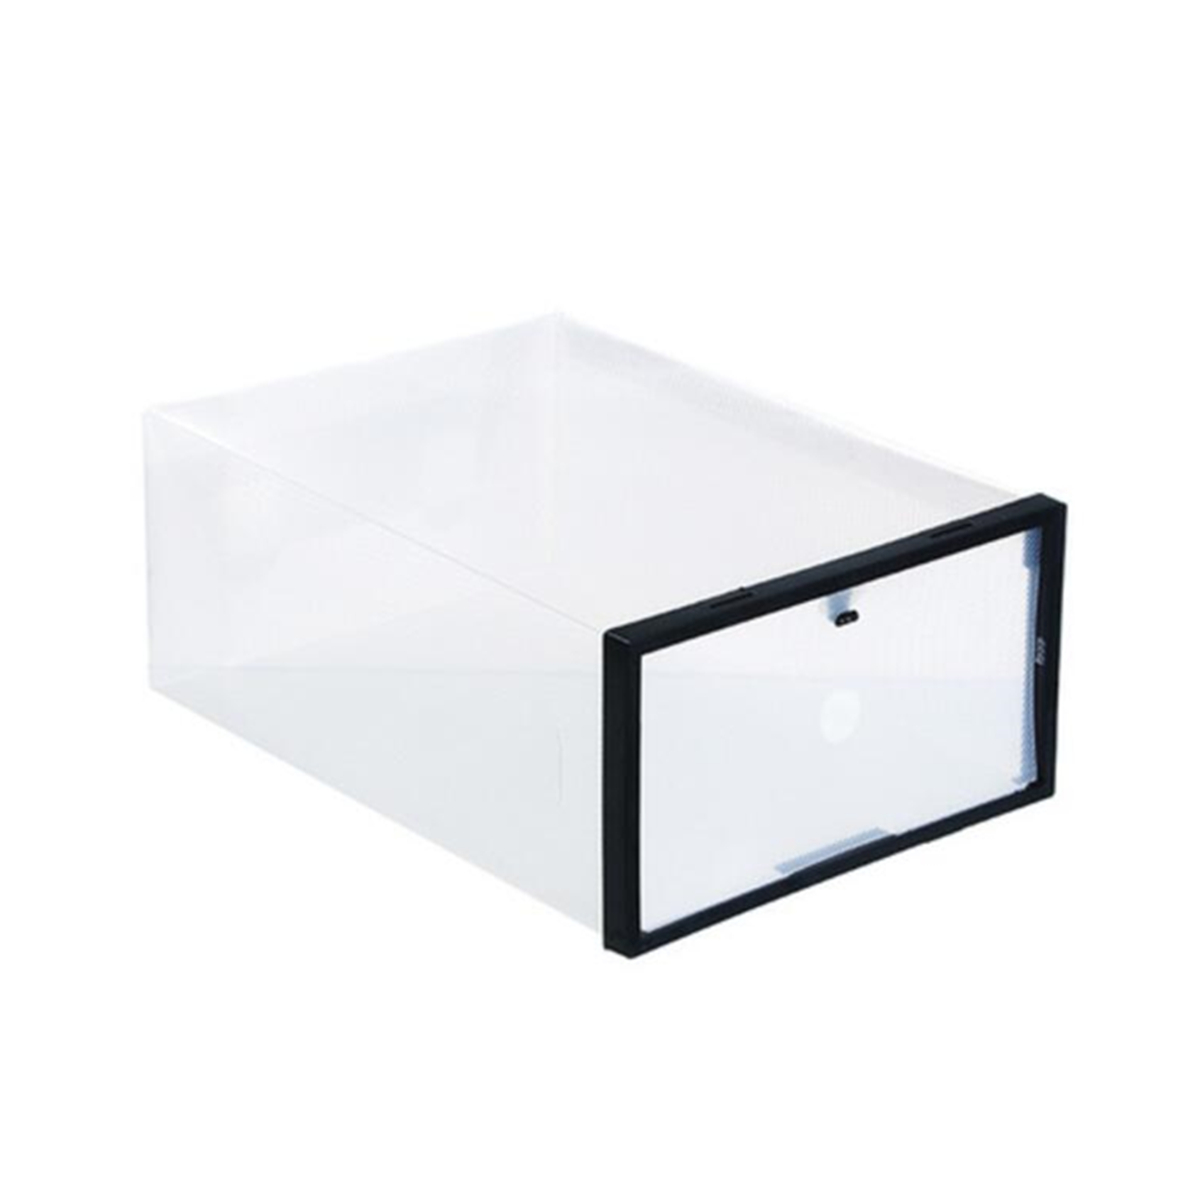 Foldable Clear Plastic Shoe Boxes Storage Organizer Stackable Tidy Display Box Baskets